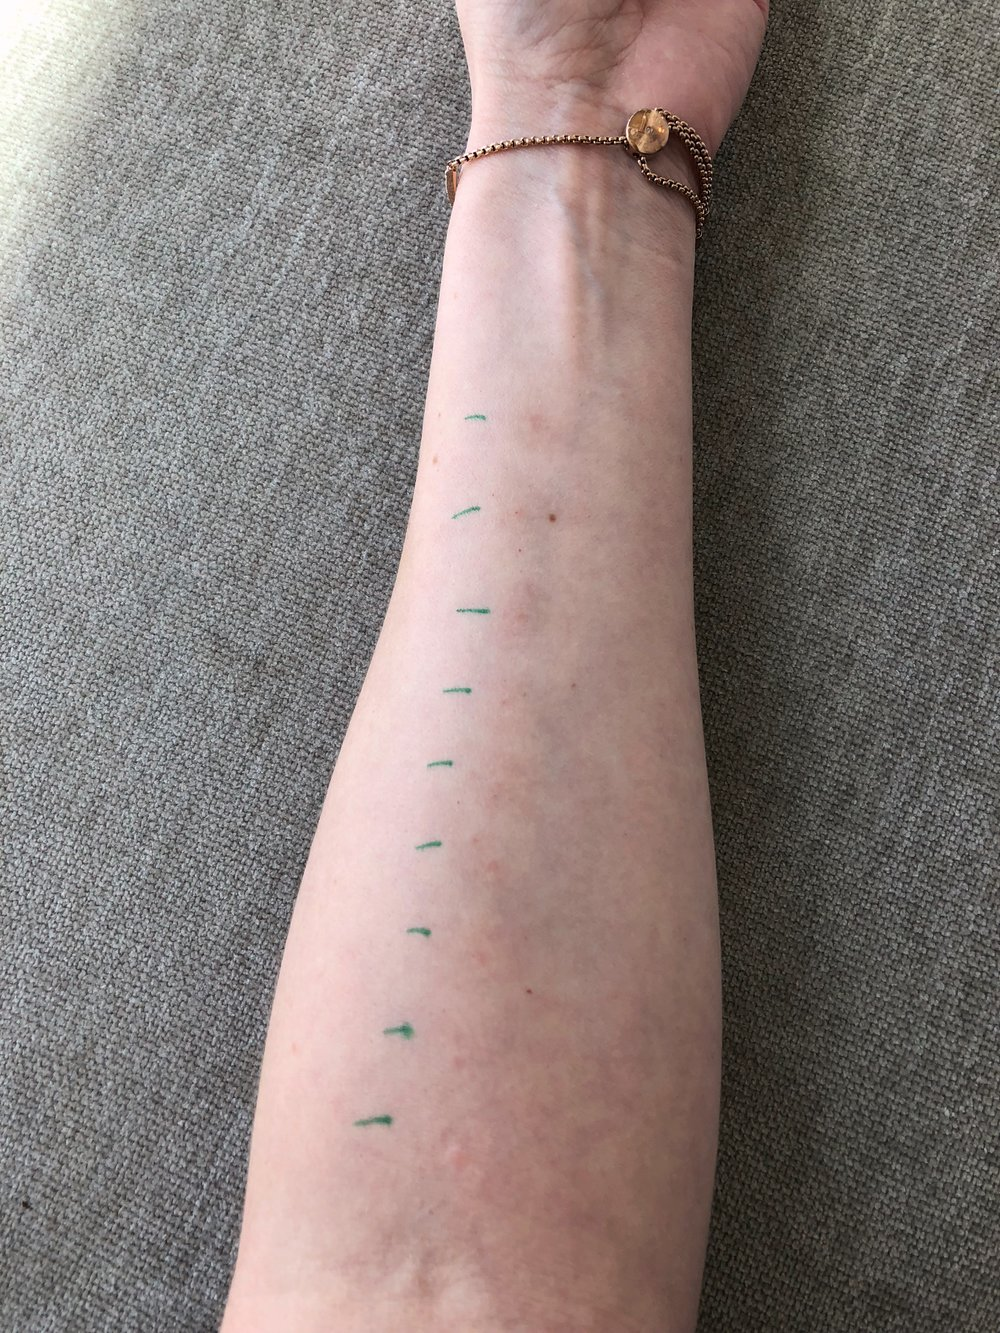 Allergy testing in a patient